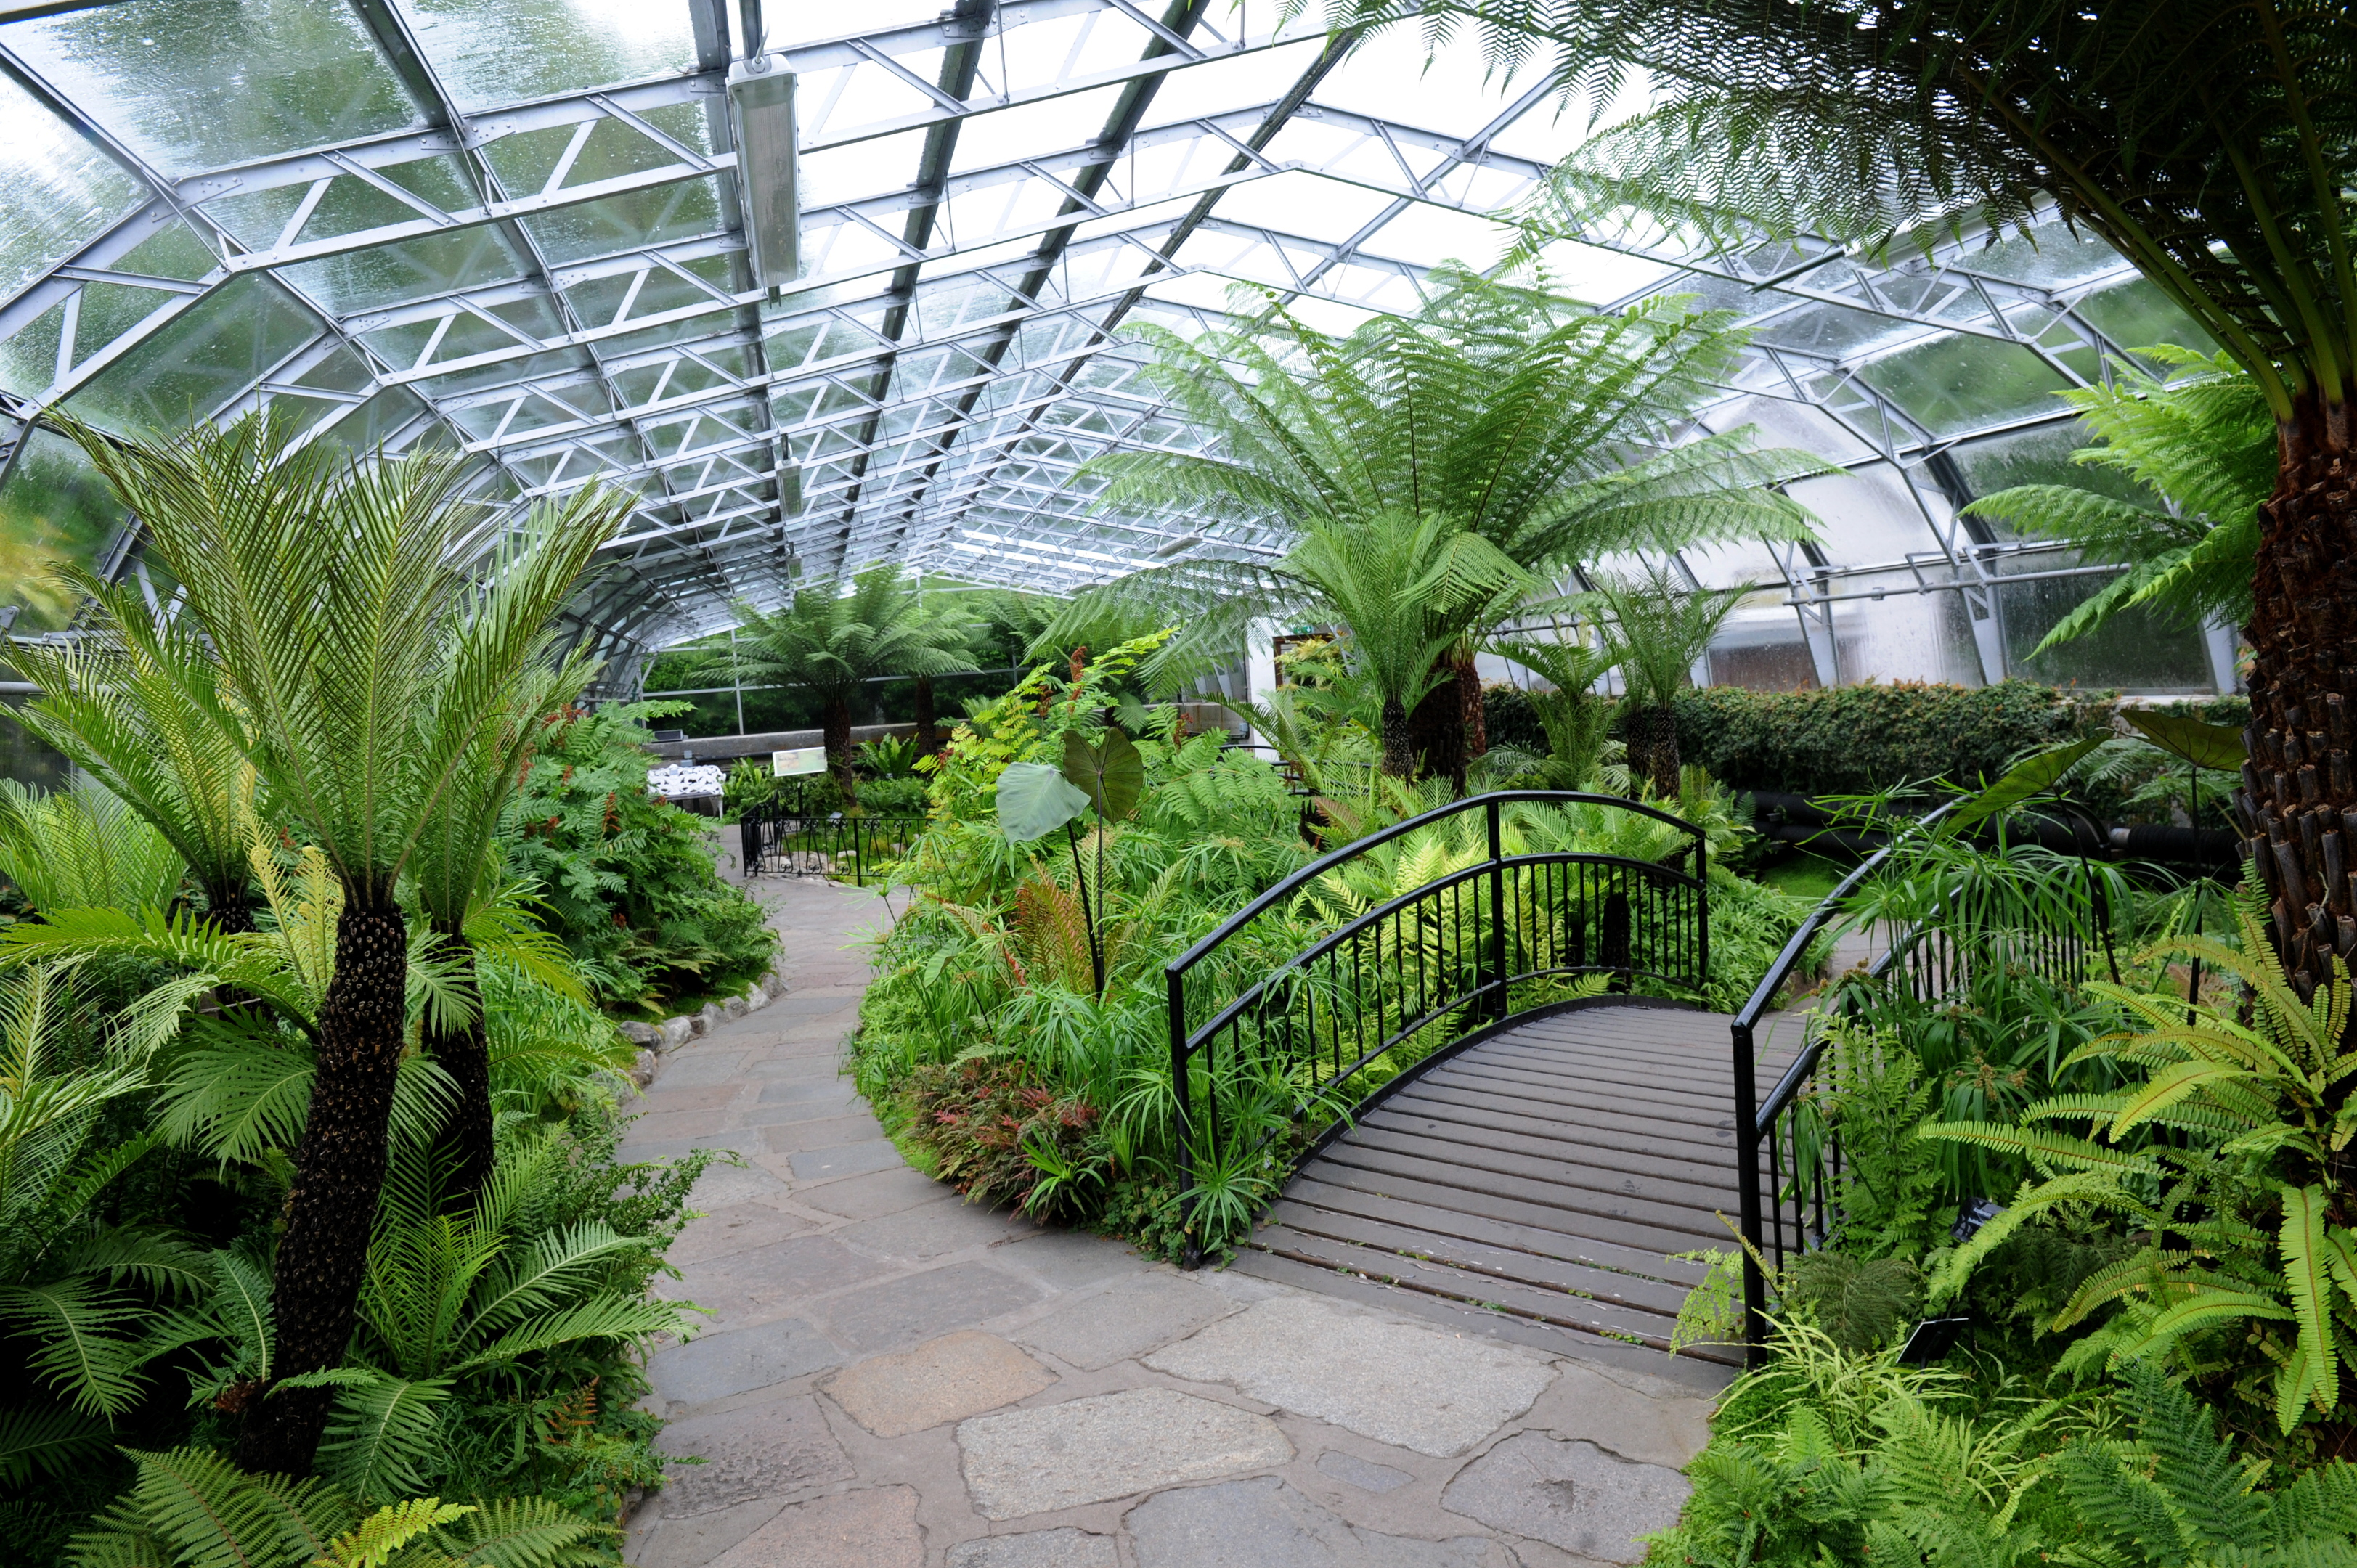 The Winter Gardens at Duthie Park